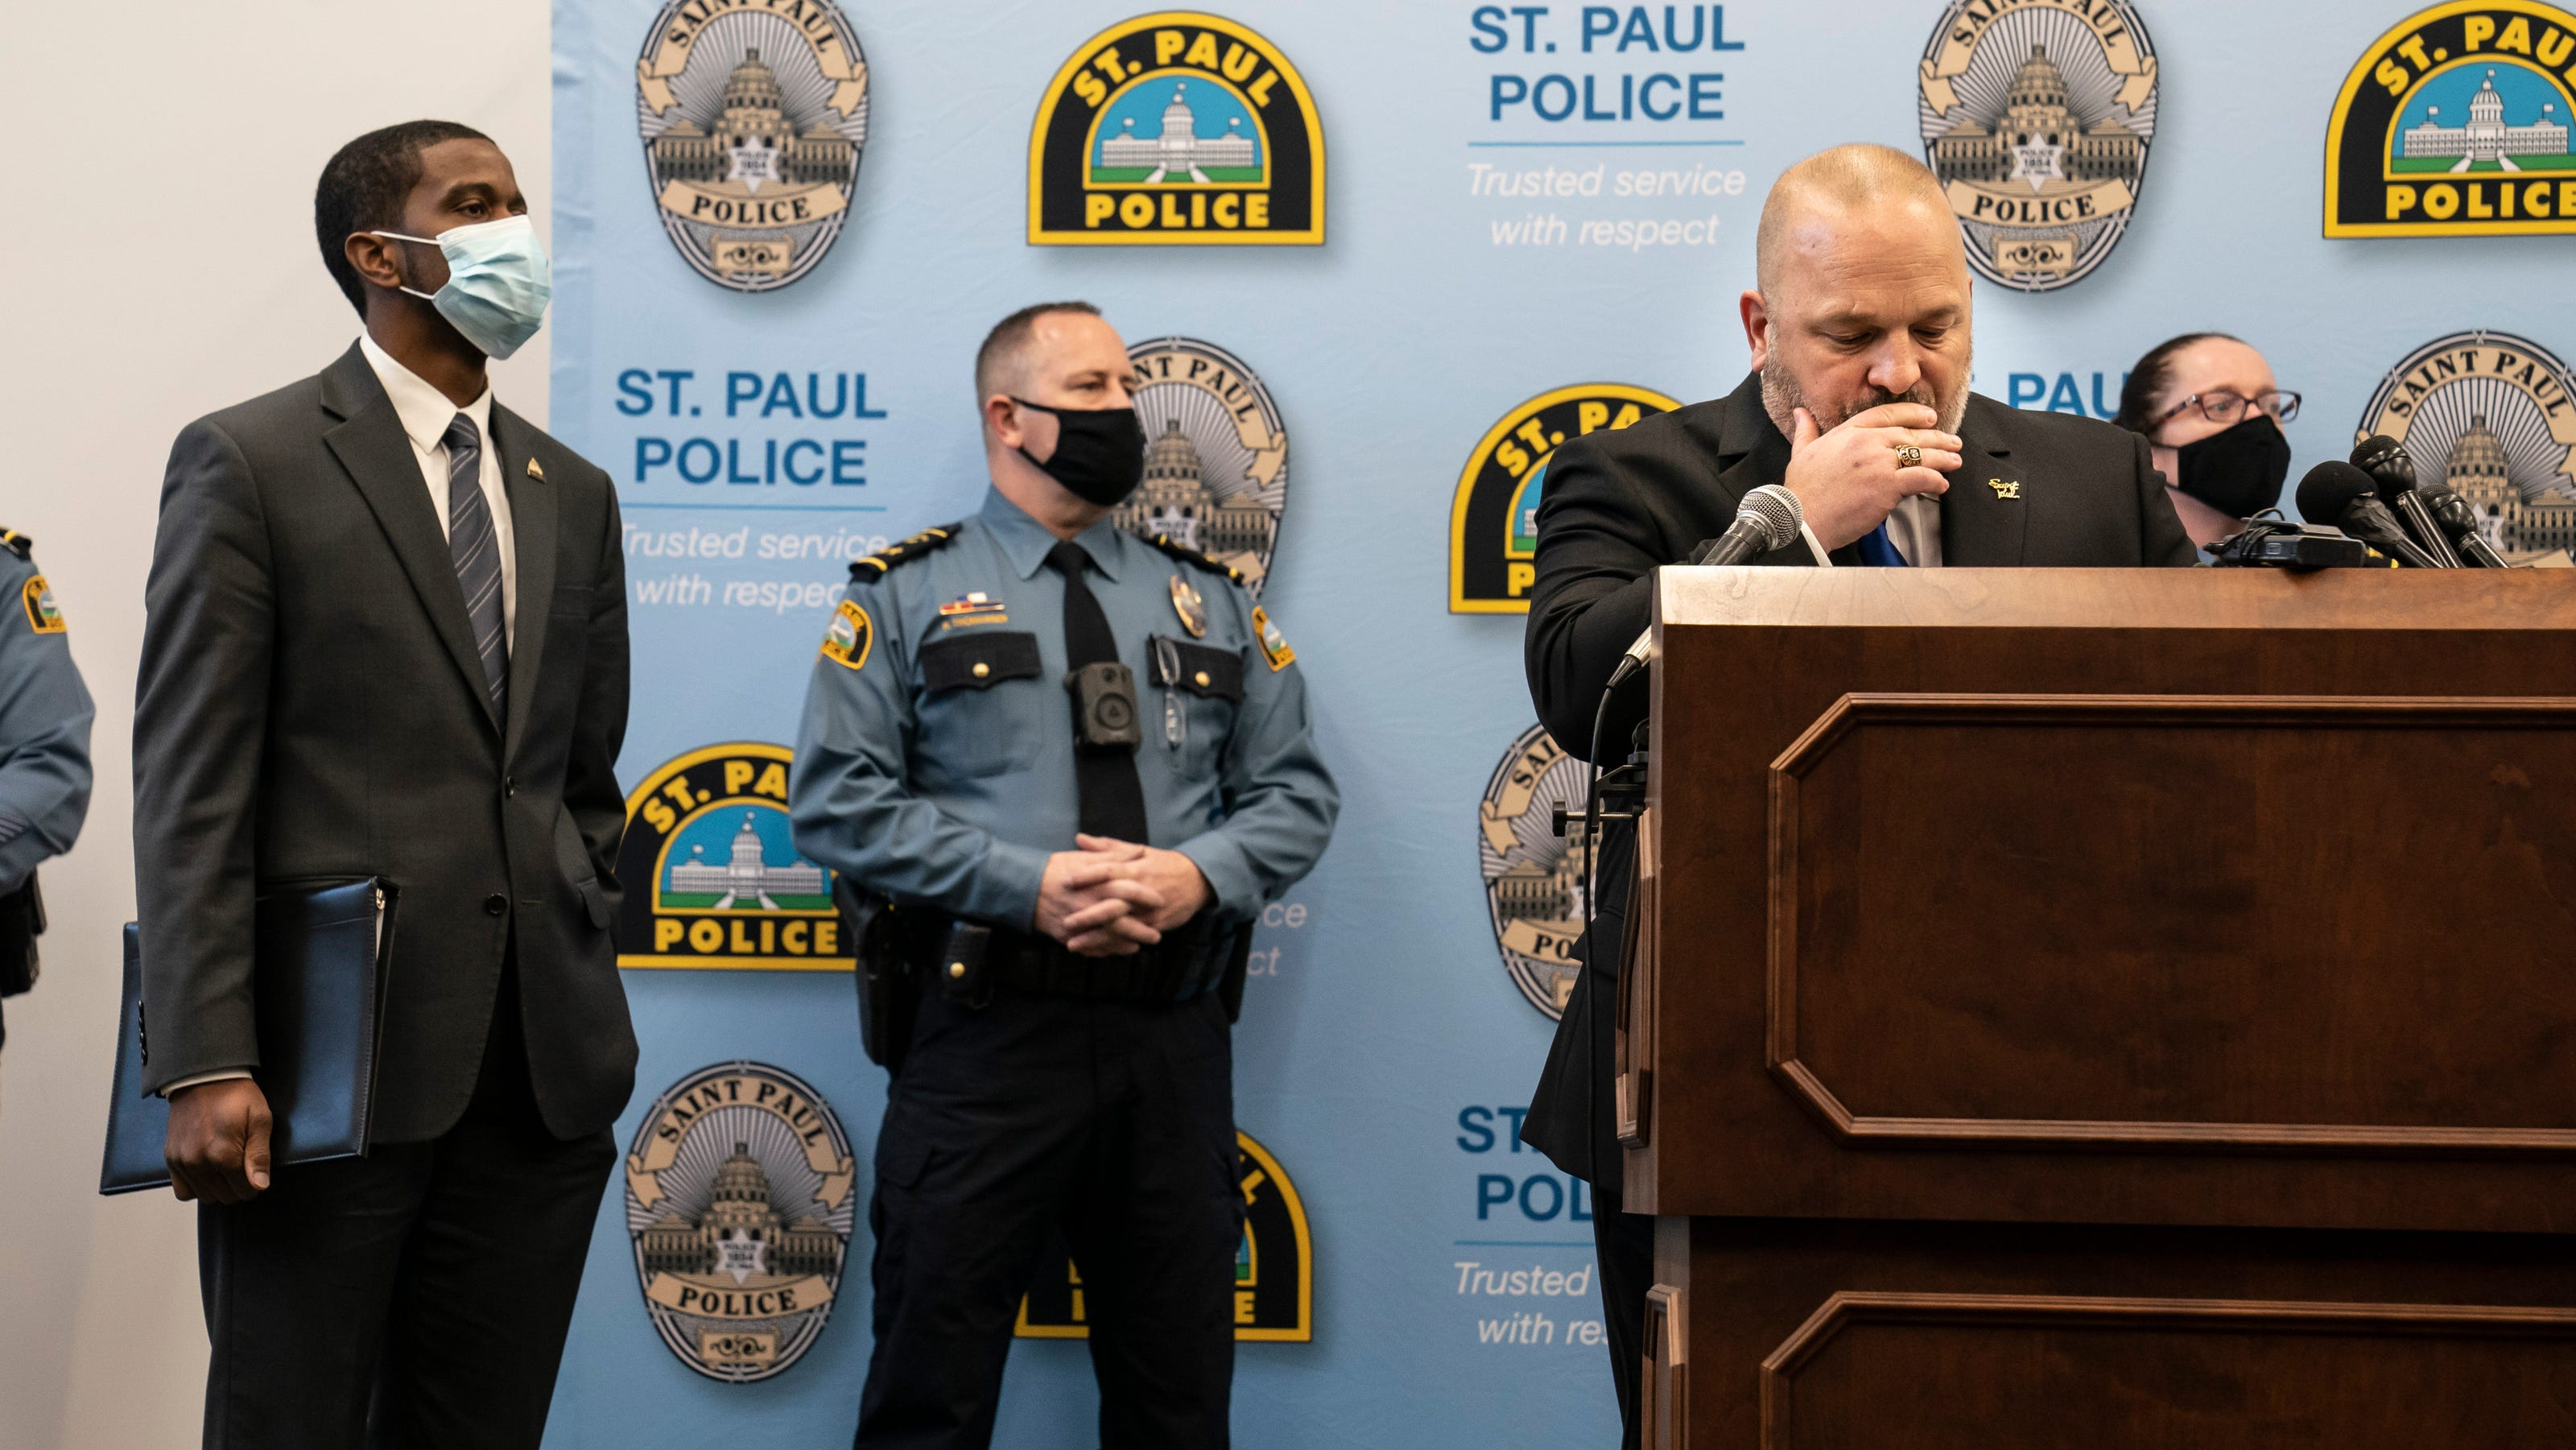 St. Paul police chief: Officer shouldnt have shot Black